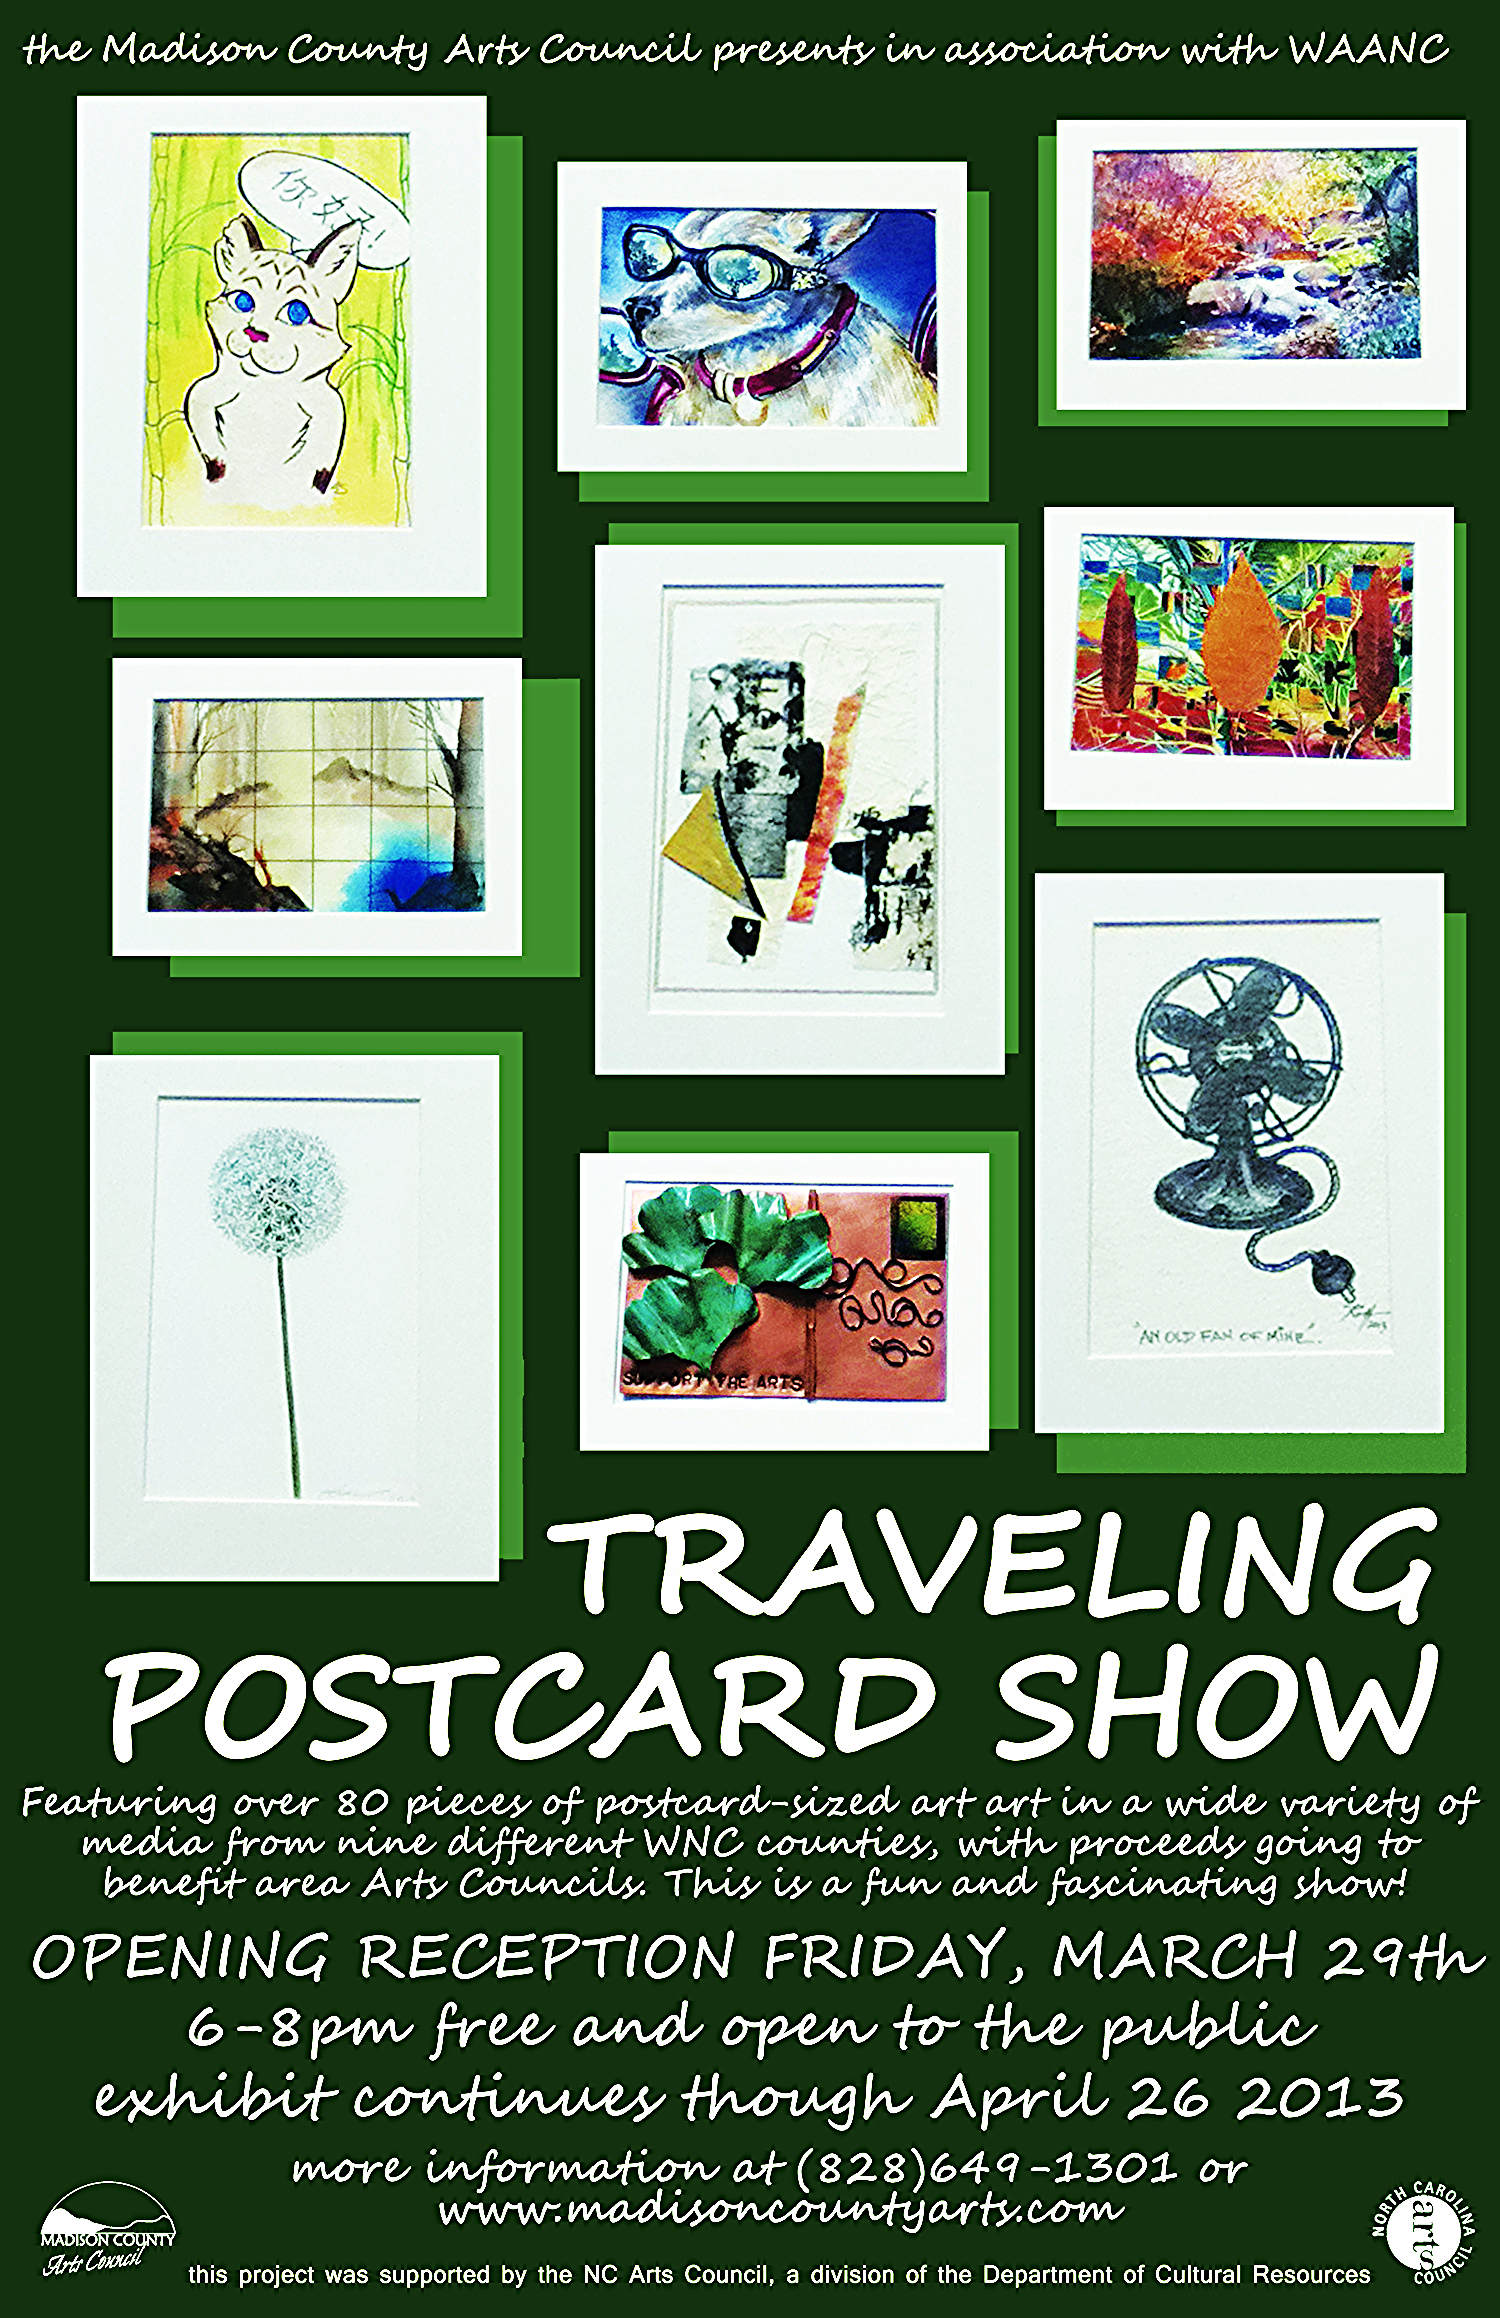 Go see the show sometime between March 29, 2013 to April 26, 2013. Three of my fellow Spring Creek Artists (SCA), Lynda Wheelock, Maxine Dalton, and Barbara Quigley, are also represented.